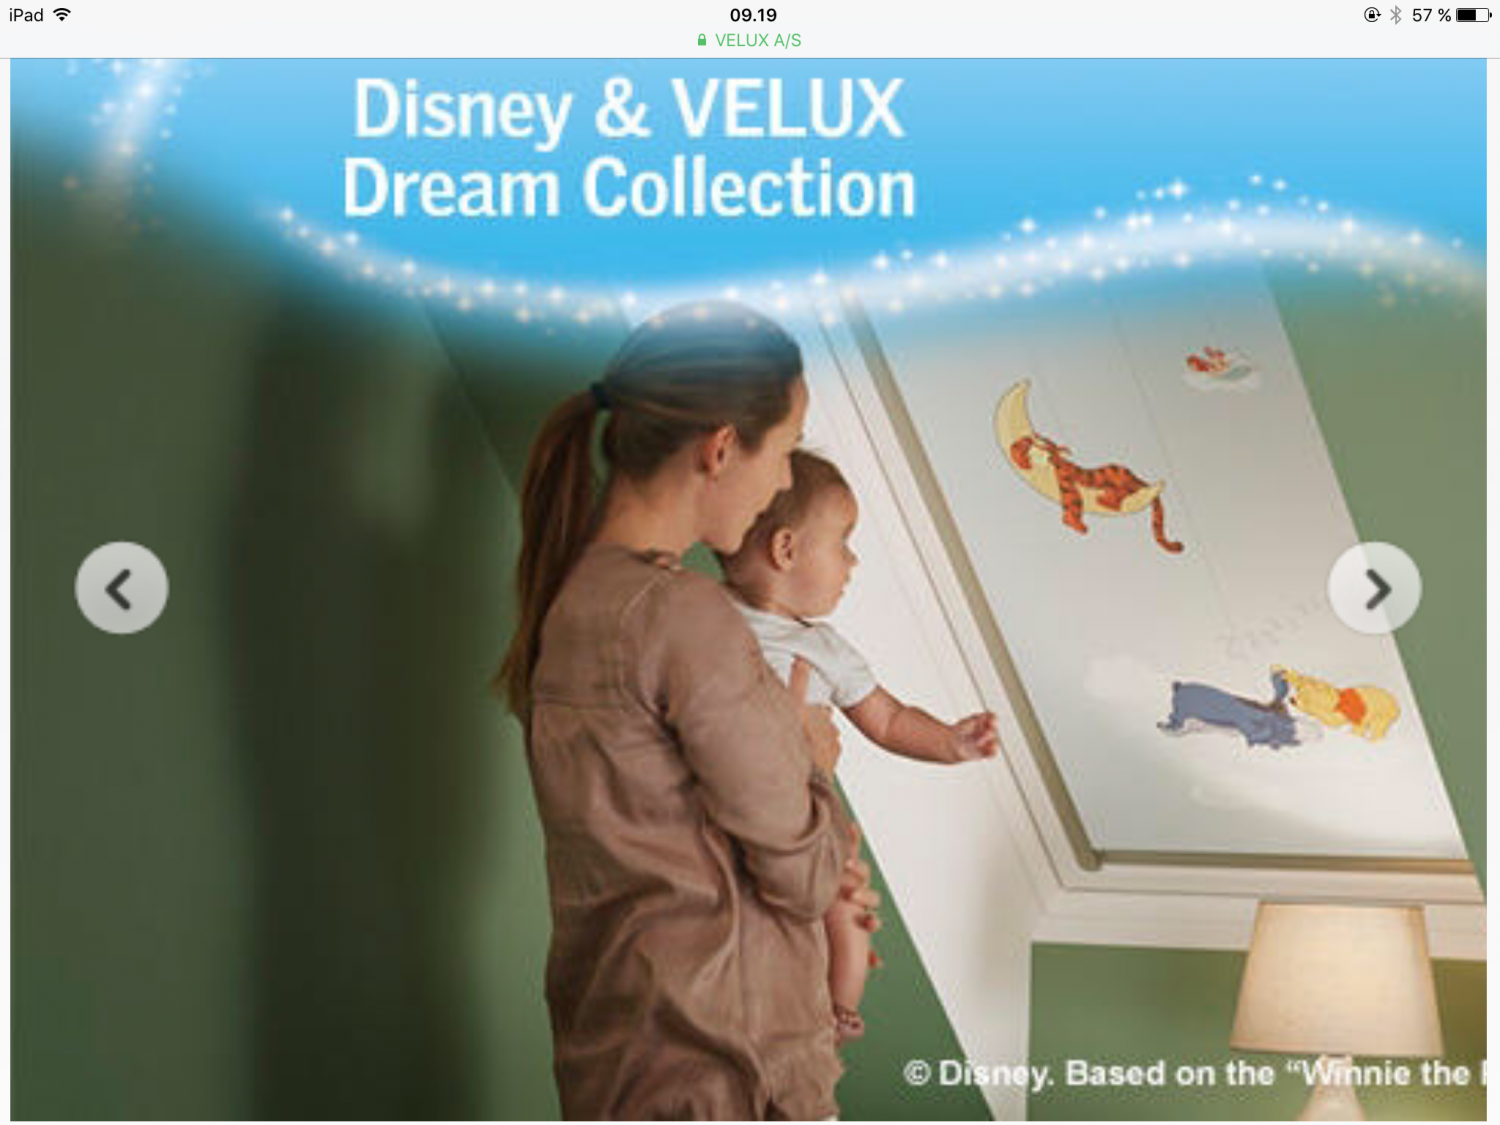 Frubevershverdag barnerommet inspo interiør, Disney og velux dream Collection